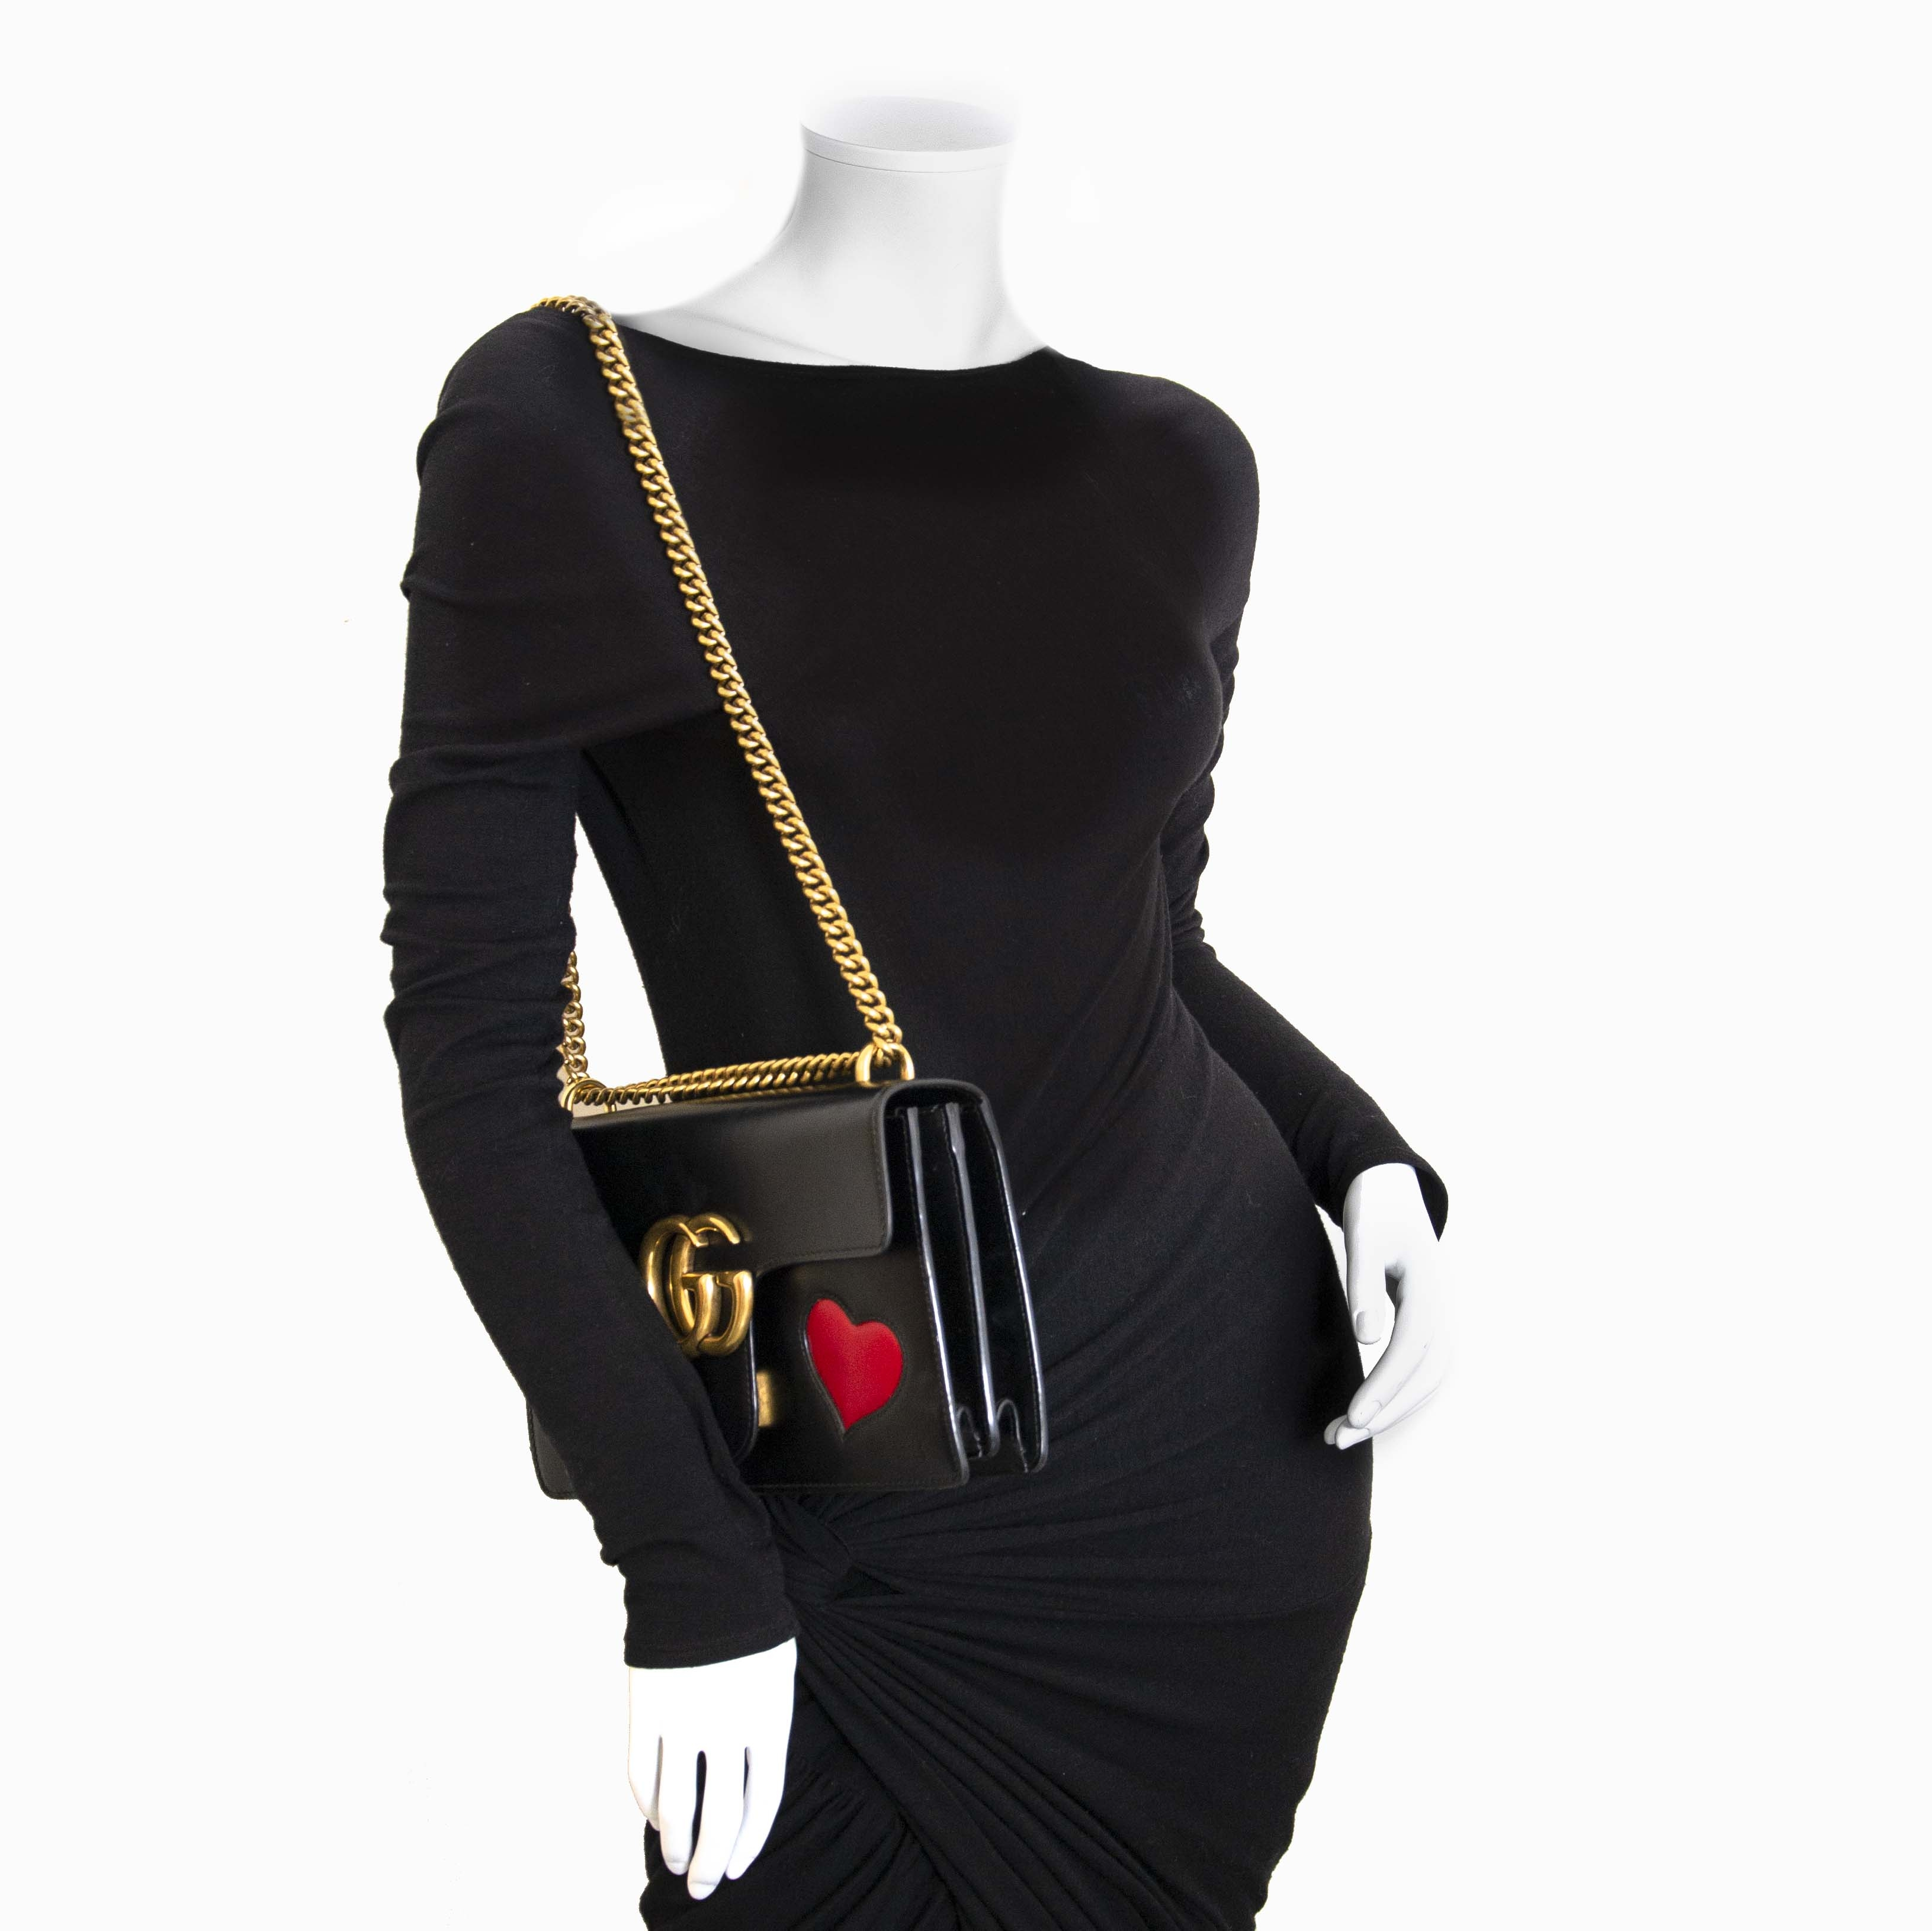 448b803dc8dd70 Labellov Shoulder - Bags ○ Buy and Sell Authentic Luxury